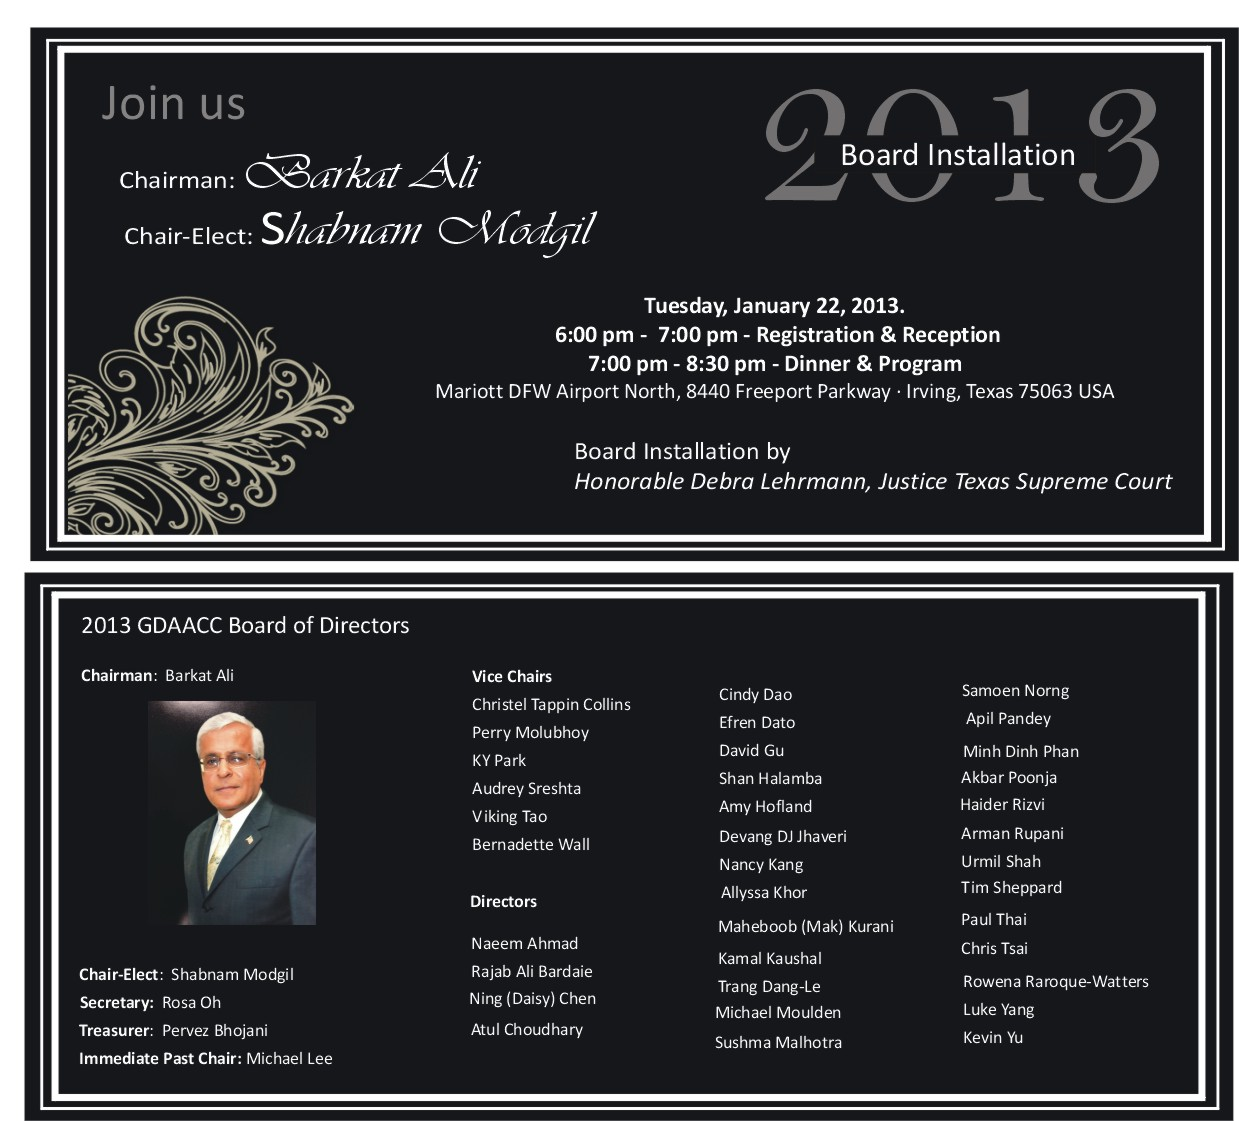 Install invitation with board list 2013